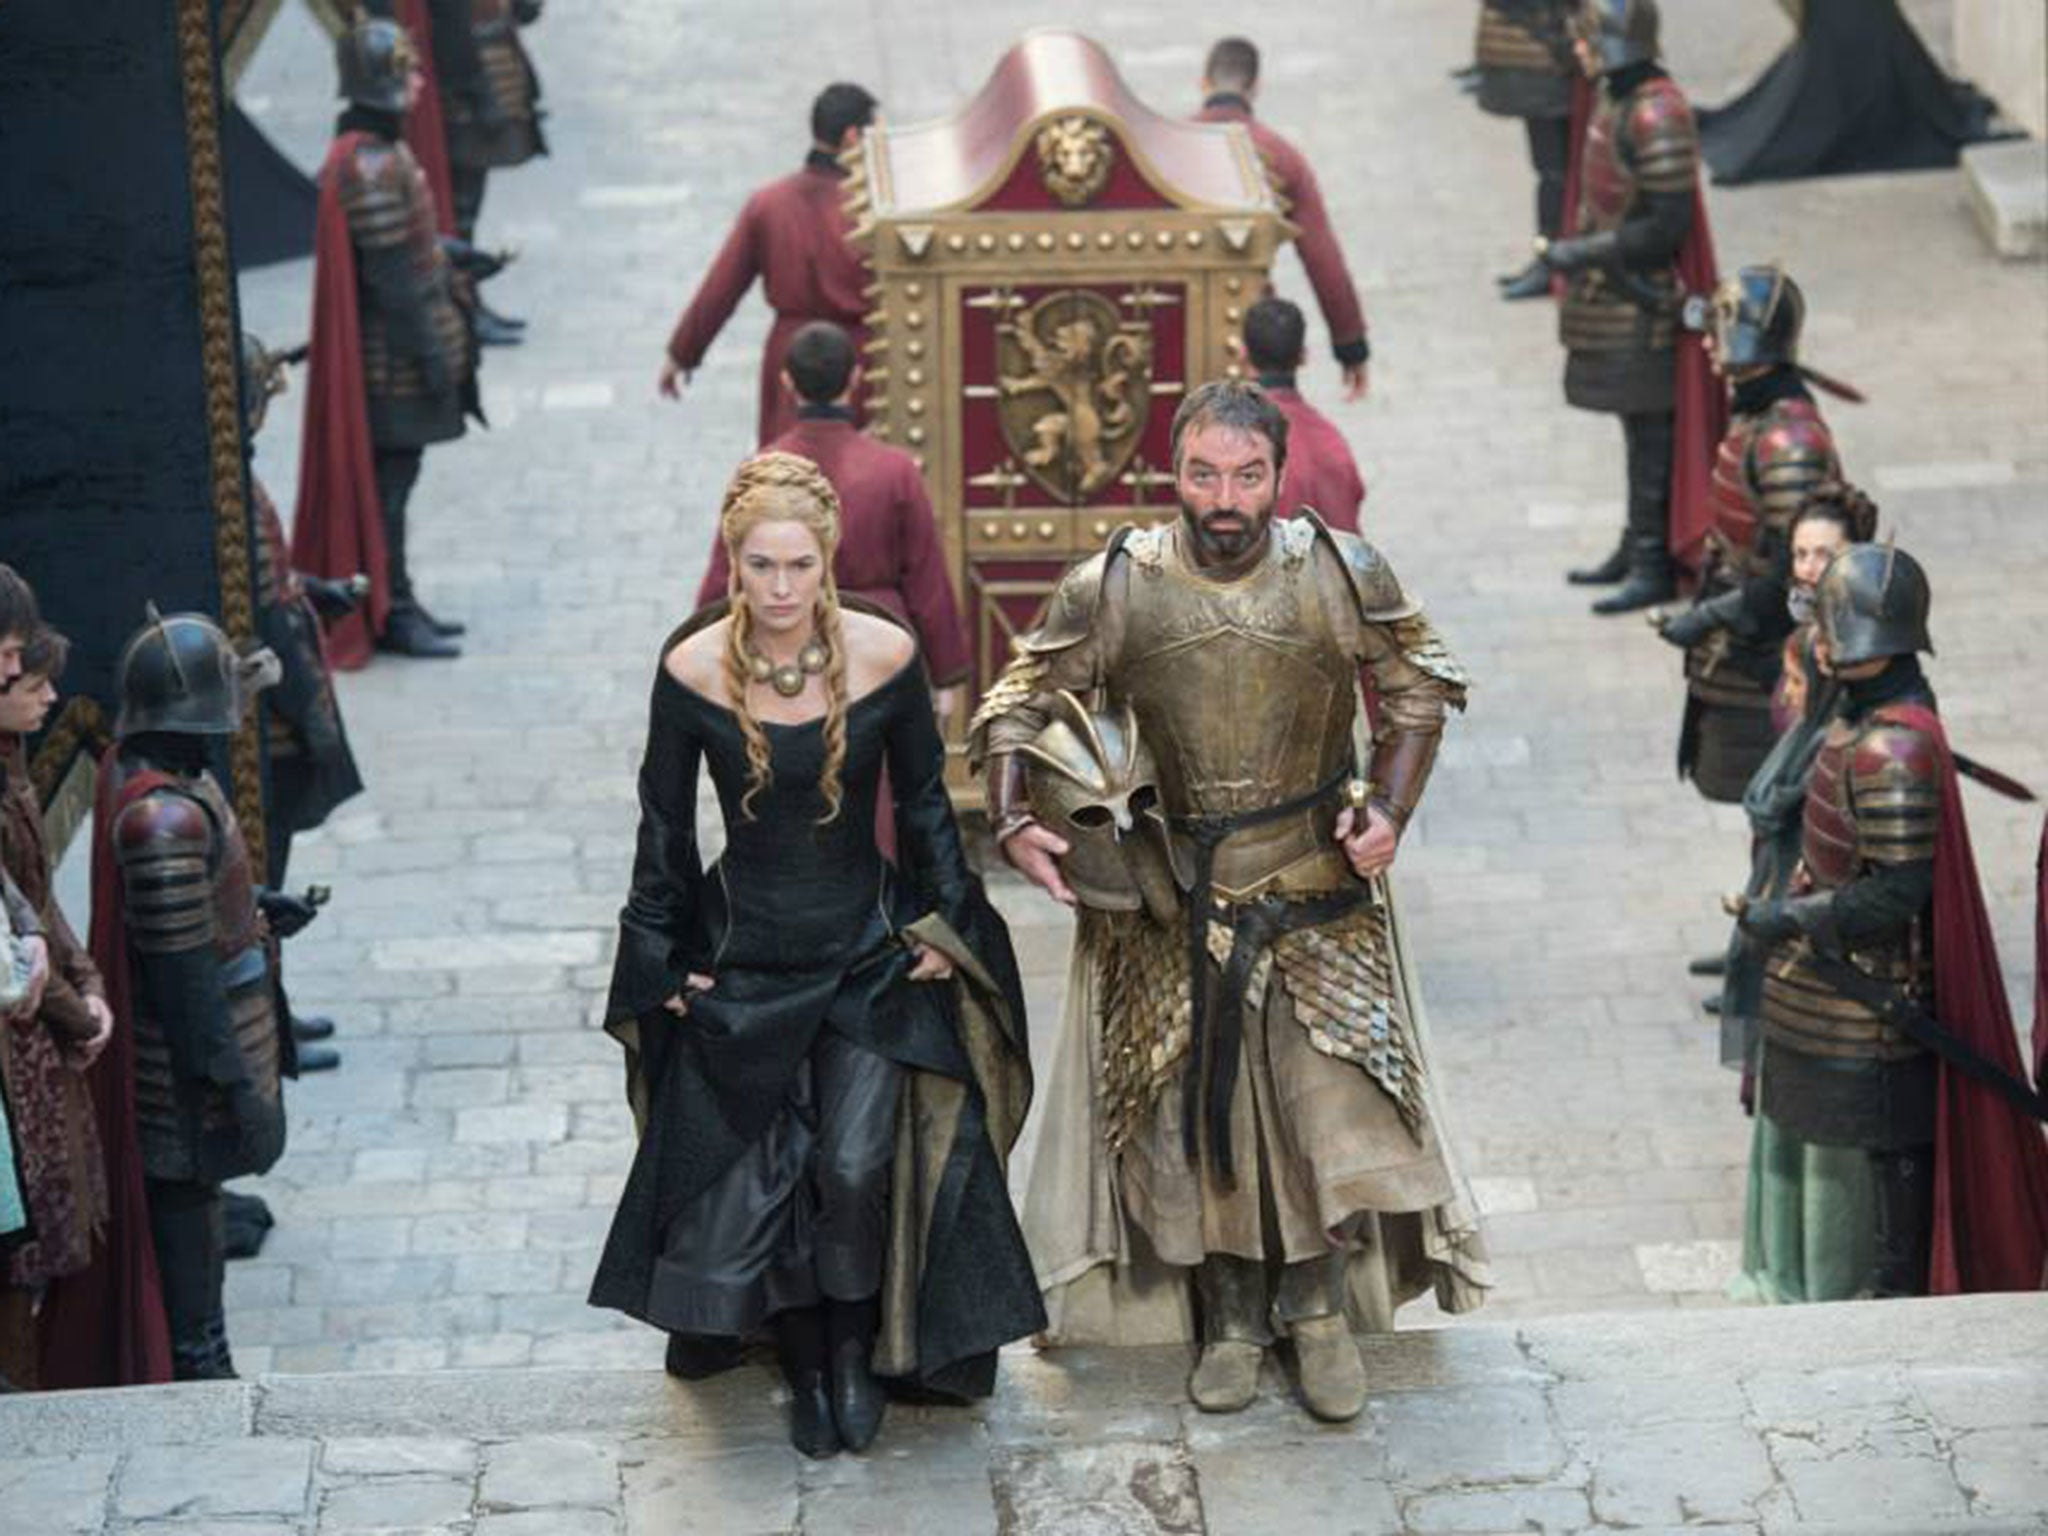 'There was no time to say goodbye and I felt really alone': What it's like to die on Game of Thrones